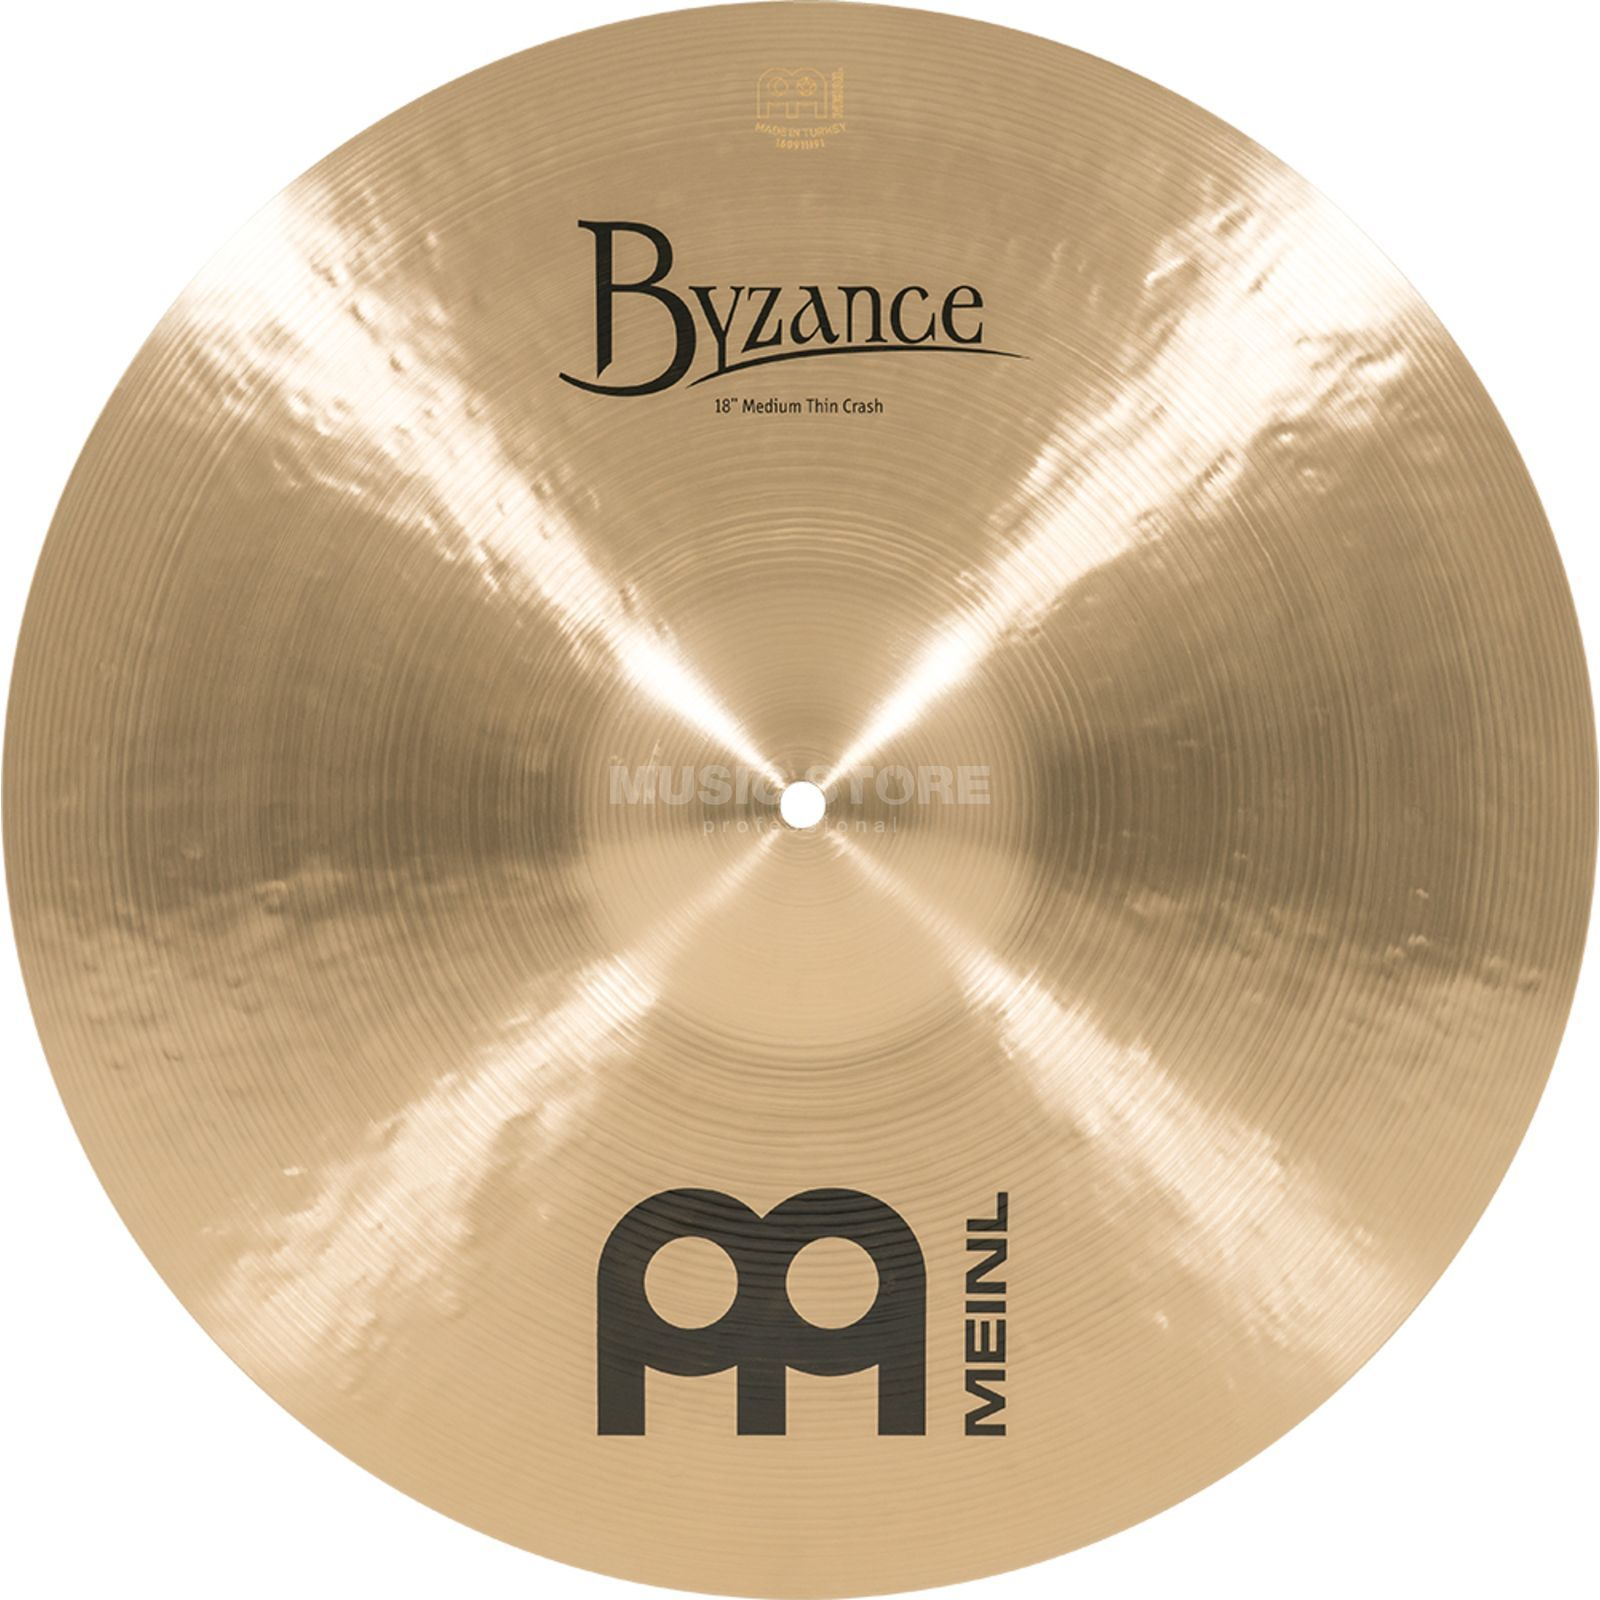 "Meinl Byzance Medium Thin Crash 18"" B18MTC, Traditional Finish Produktbild"